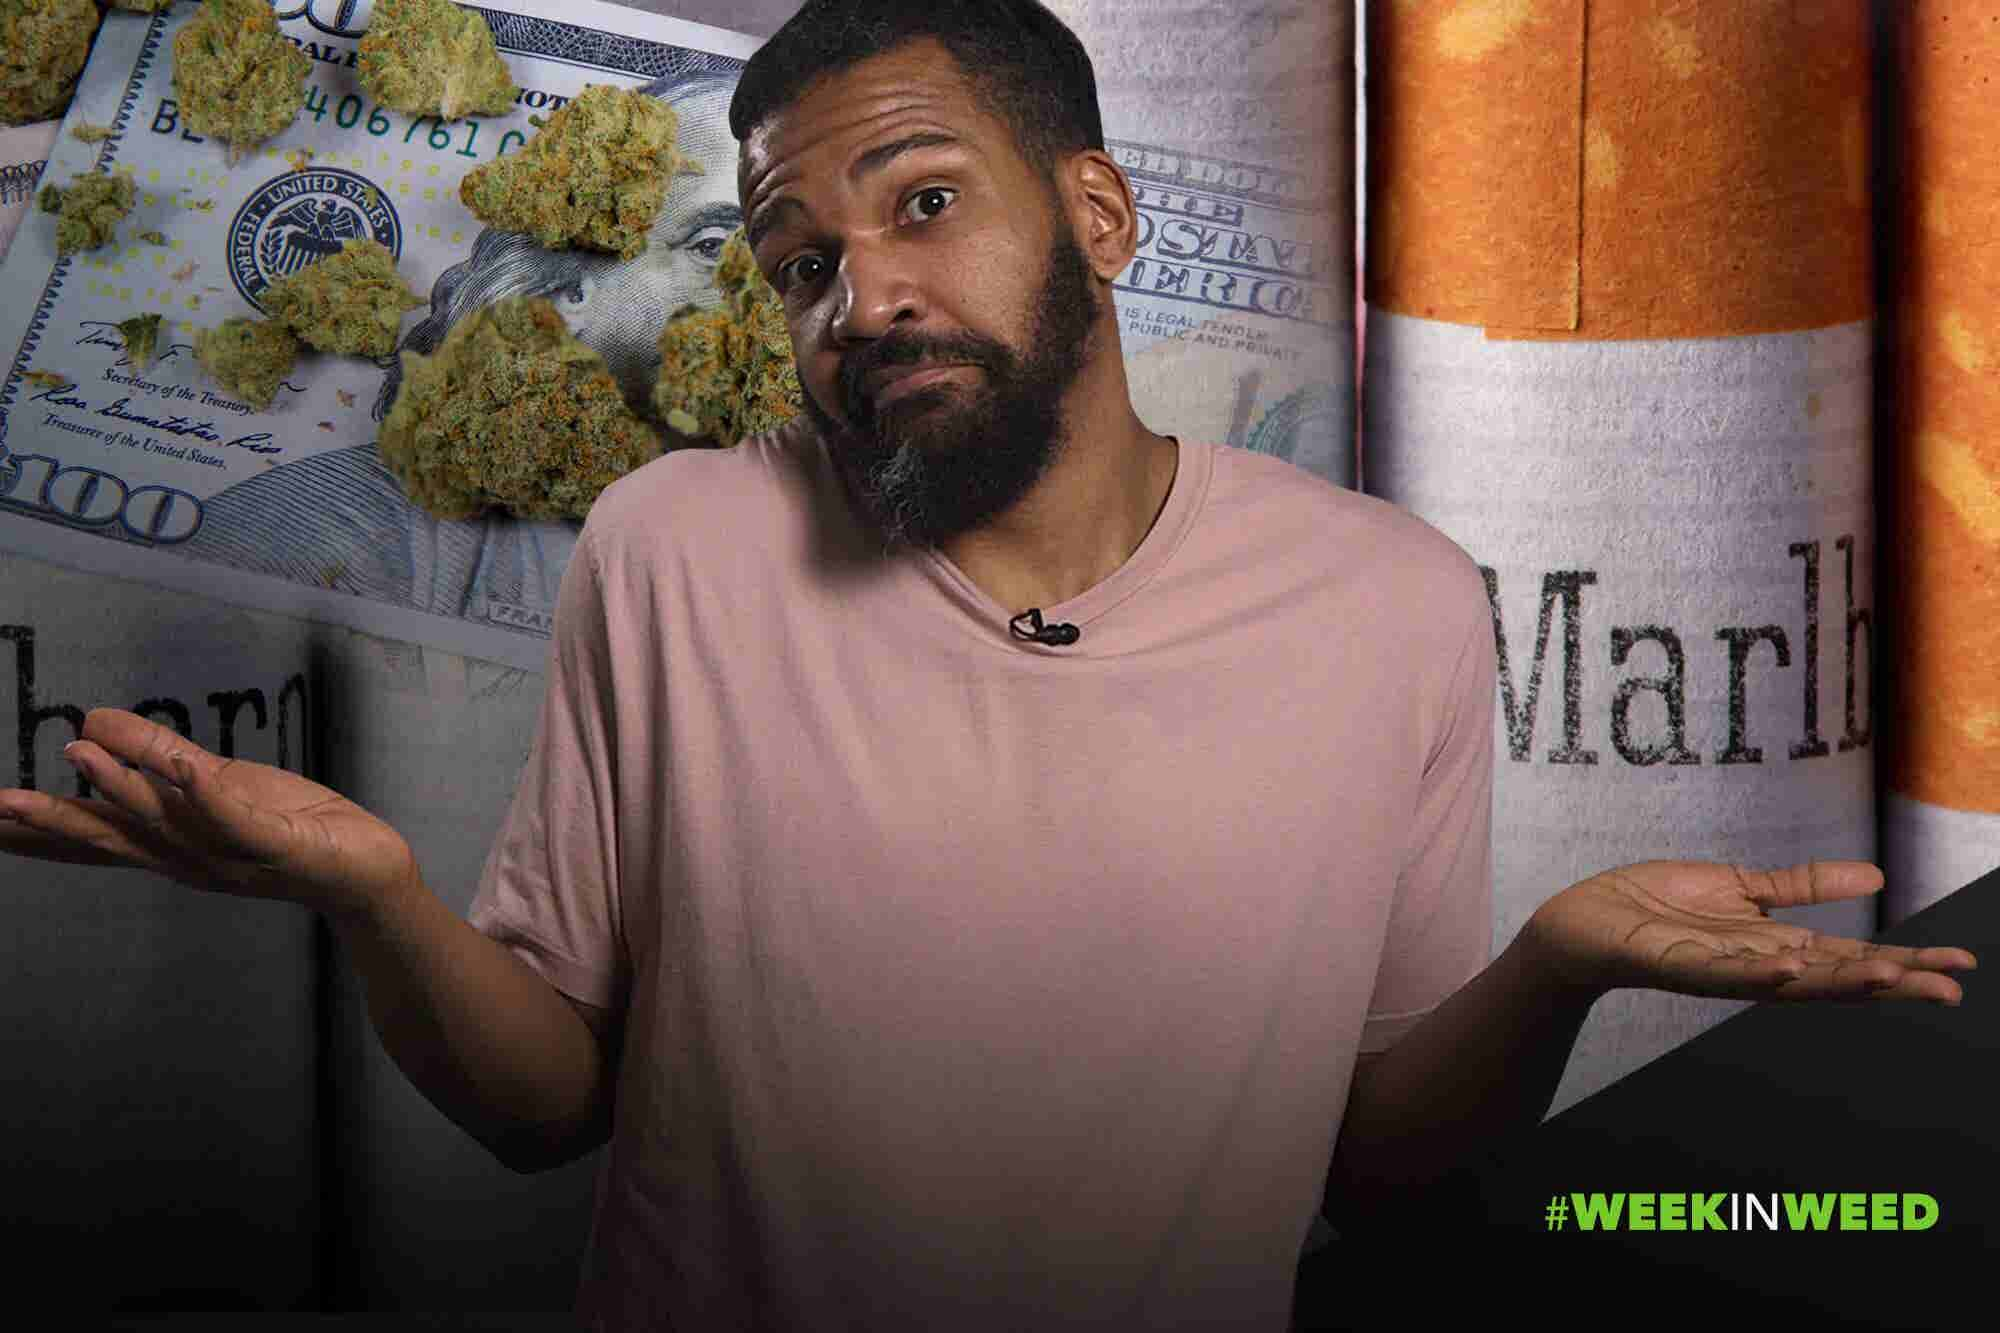 This Week in Weed: Marlboro Ready to Buy Marijuana?!